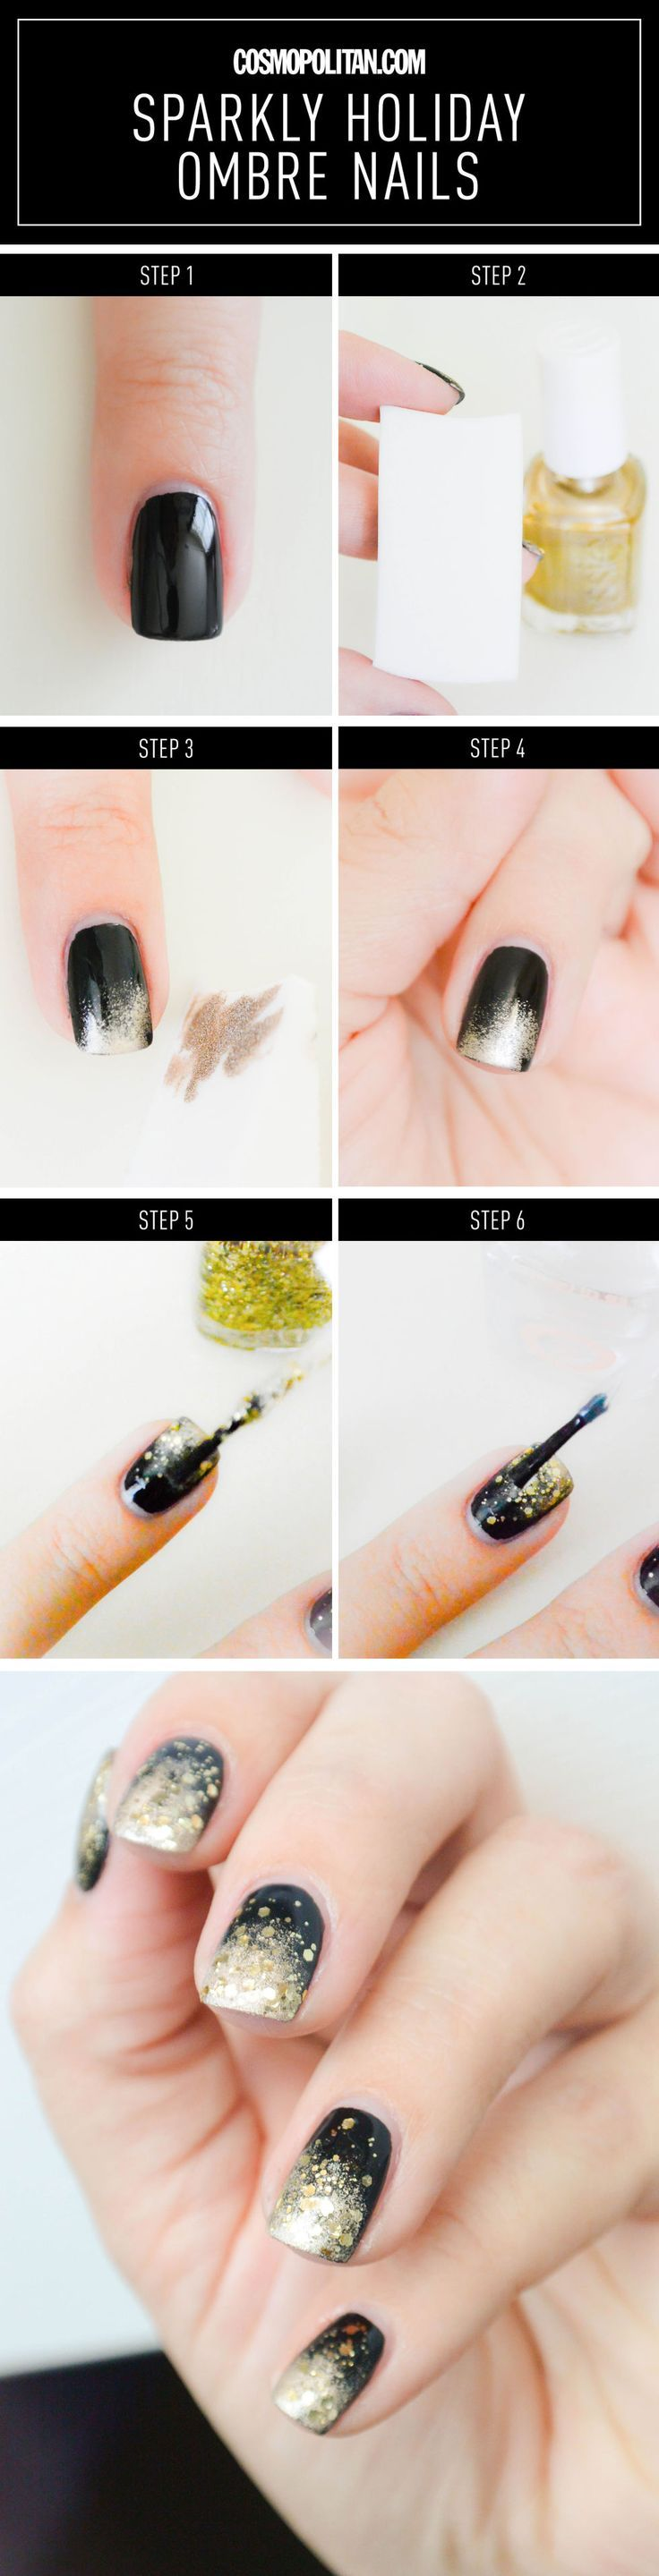 "Sparkly New Year's Eve Ombré Nails - Nail Tutorial 1. Basecoat, such as Essie Millionails 2. Black nail polish, such as Essie ""Licorice"" 3. Gold nail polish, such as Essie ""Good as Gold"" 4. Glitter polish, such as Essie's ""Rock at the Top"" 5. Makeup sponge 6. Topcoat, such as Essie Good to Go…"